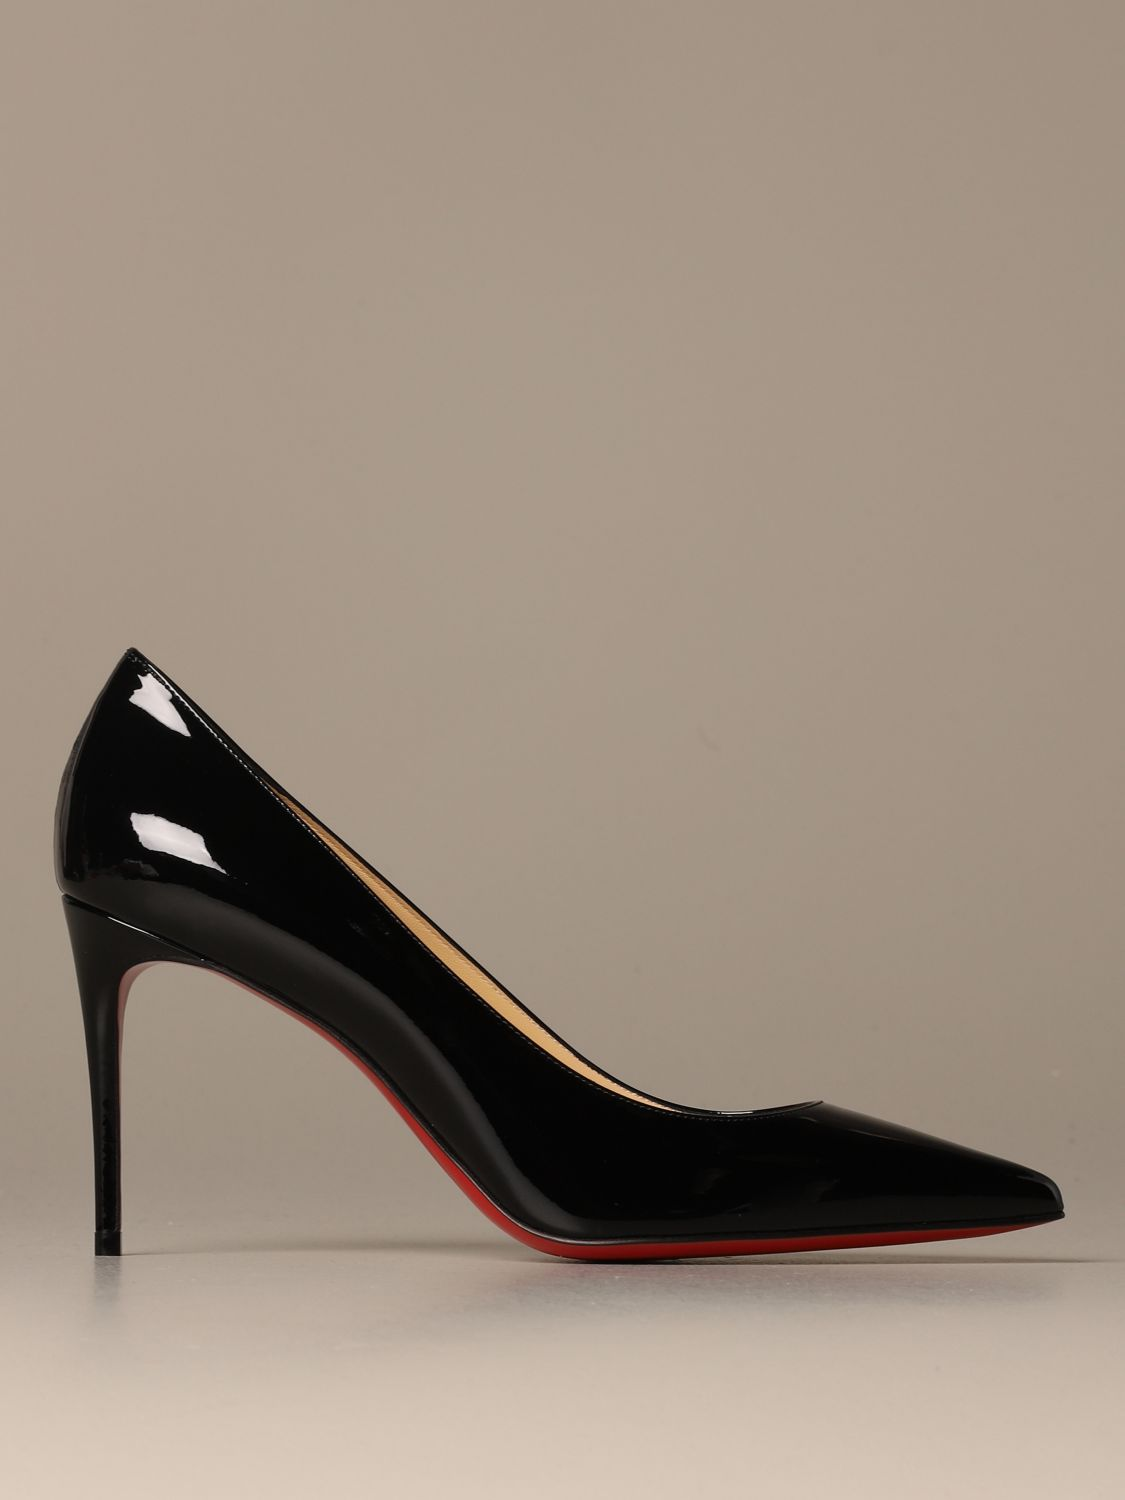 louboutin chaussures femmes